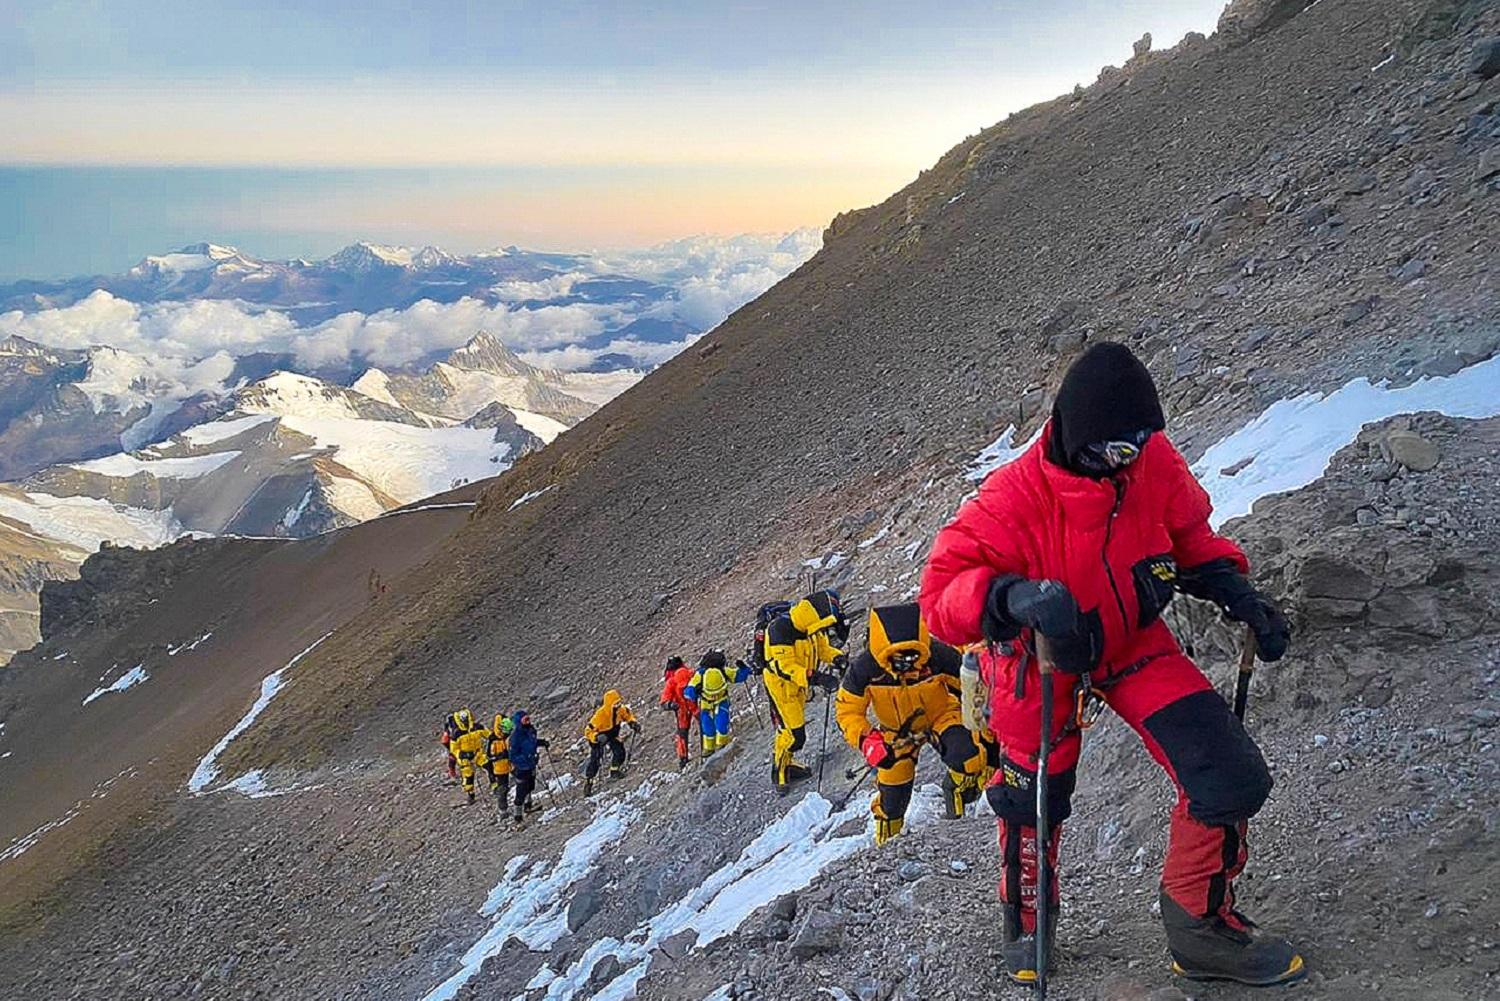 Standing Atop The Andes: A Successful Summit of Aconcagua